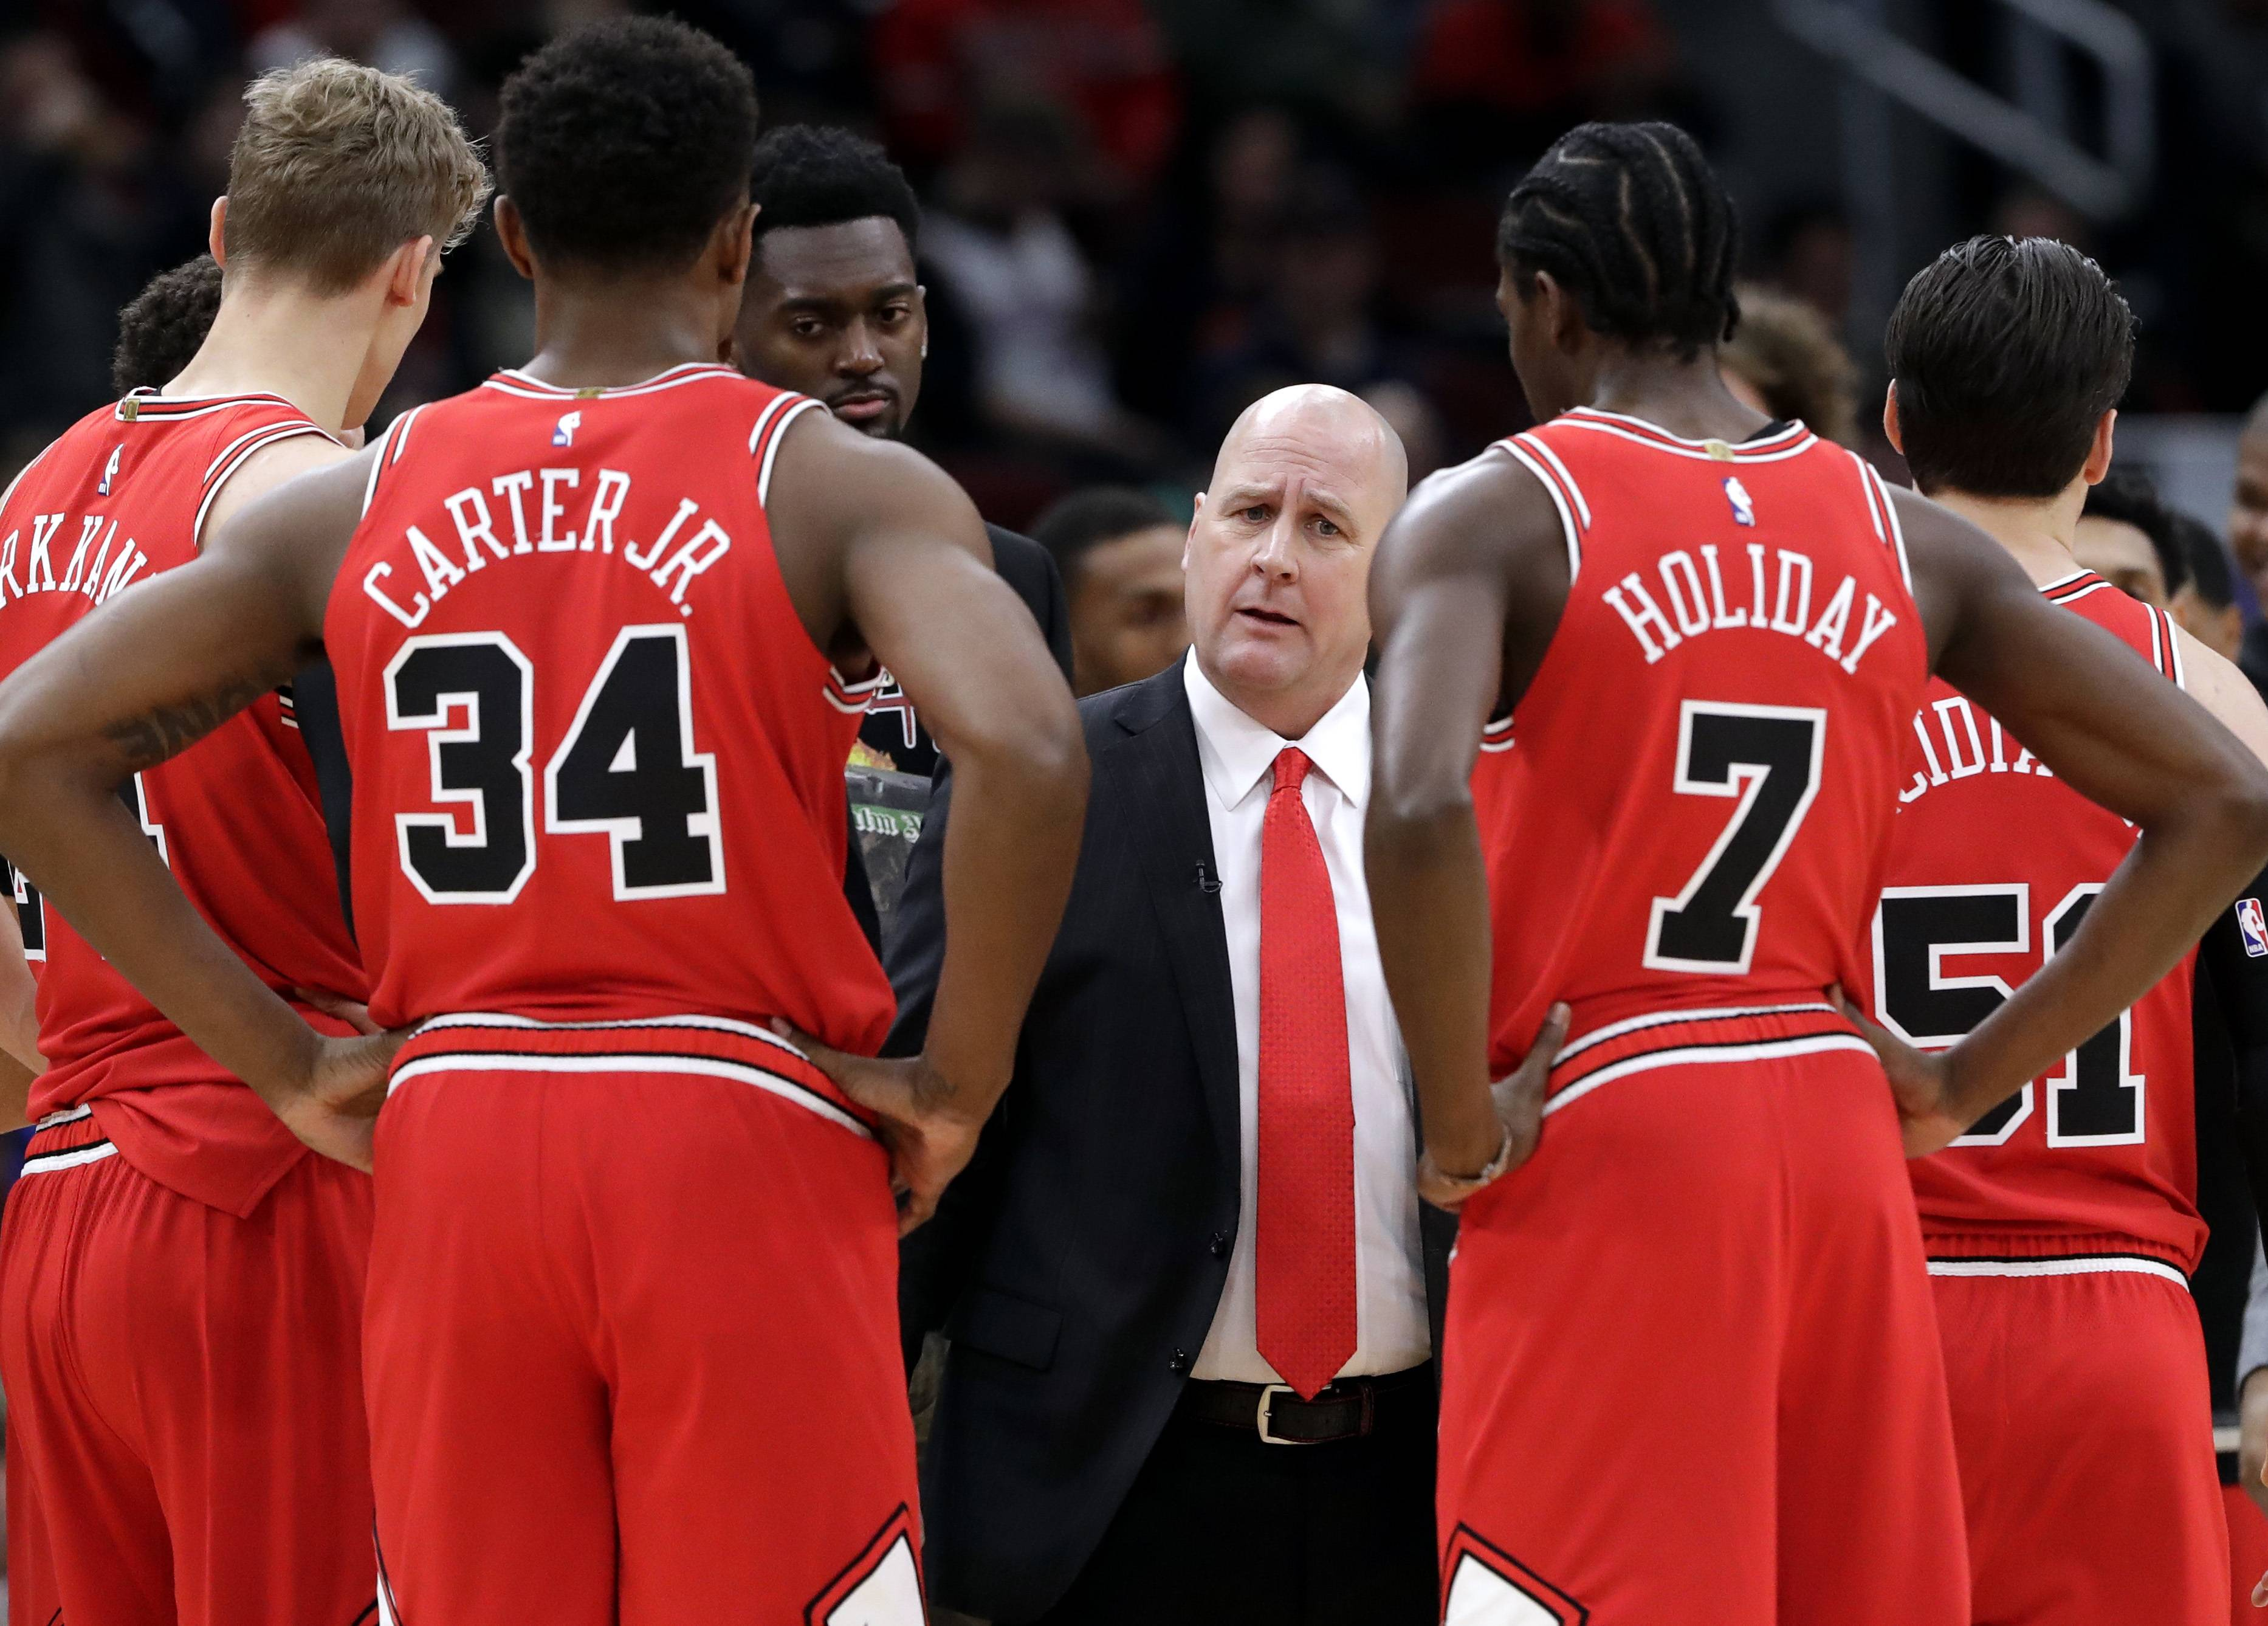 Bulls head coach Jim Boylen talks to his team during win over the Oklahoma City Thunder on Friday. The next step in Boylen's eventful first week as Bulls head coach is to institute a leadership counsel among players to discuss any problems or issues with the coaching staff.